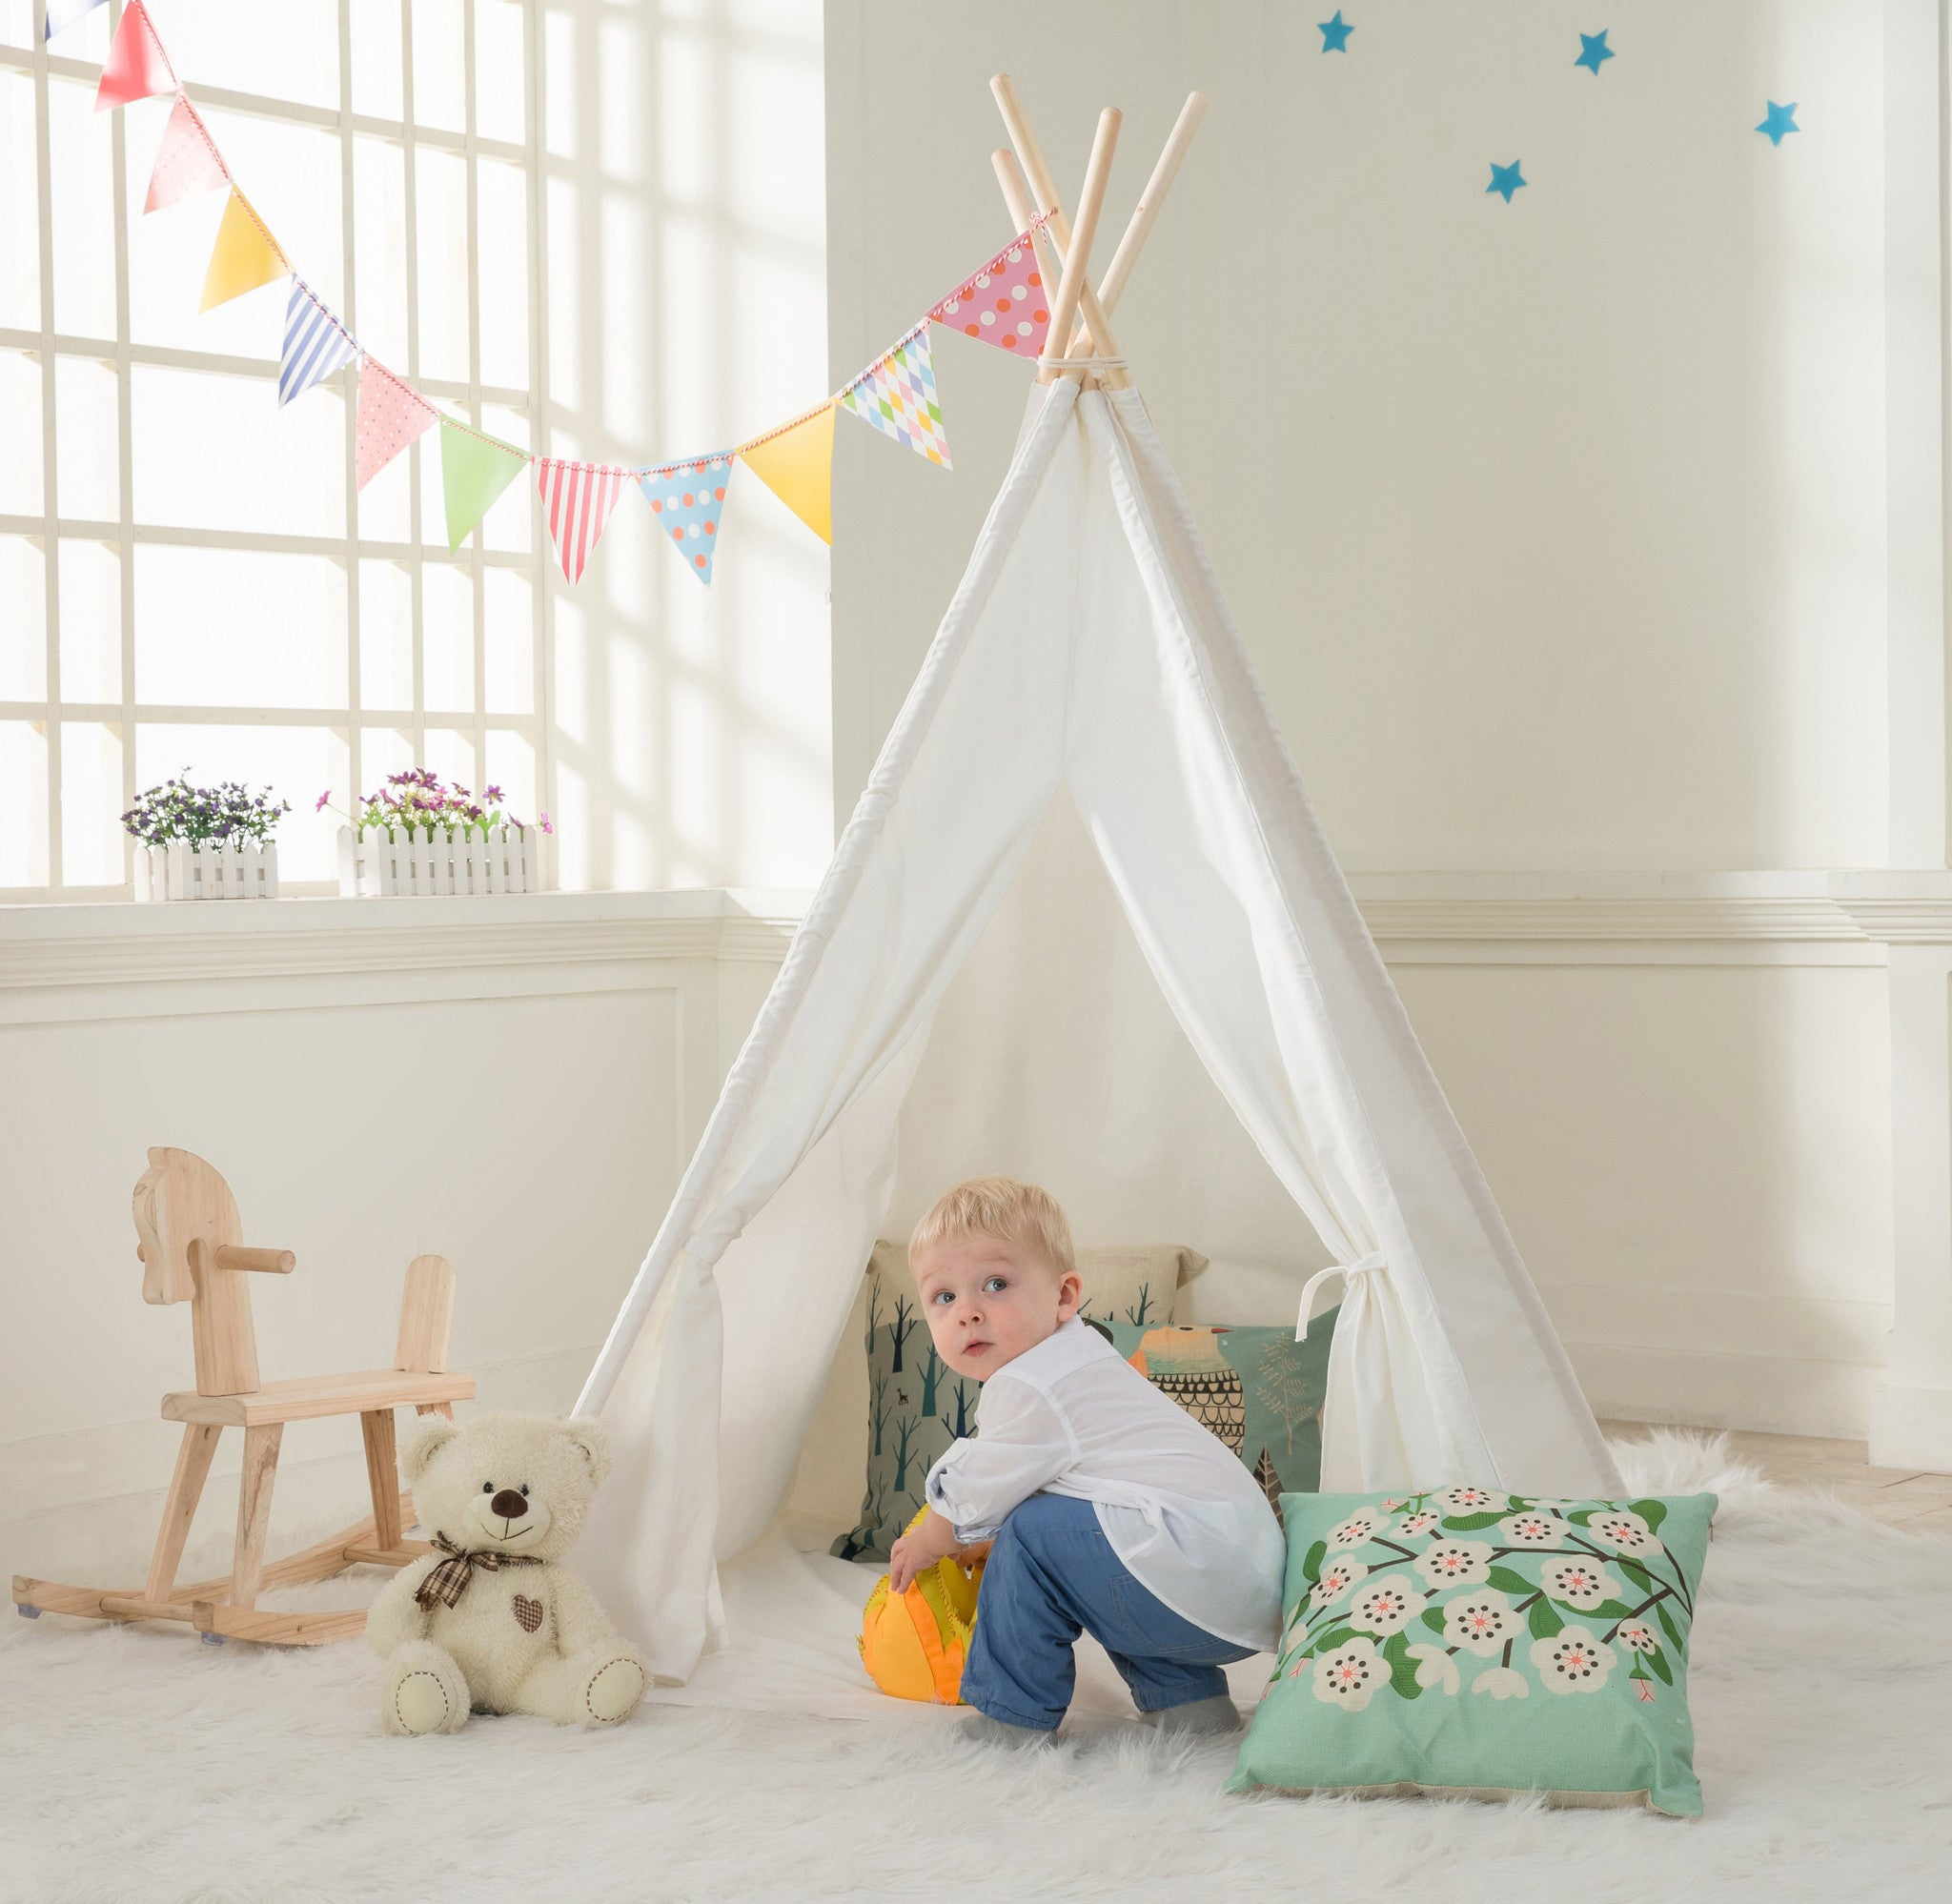 Dalosdream Kids Teepee Tent with Floor Mattress and Window